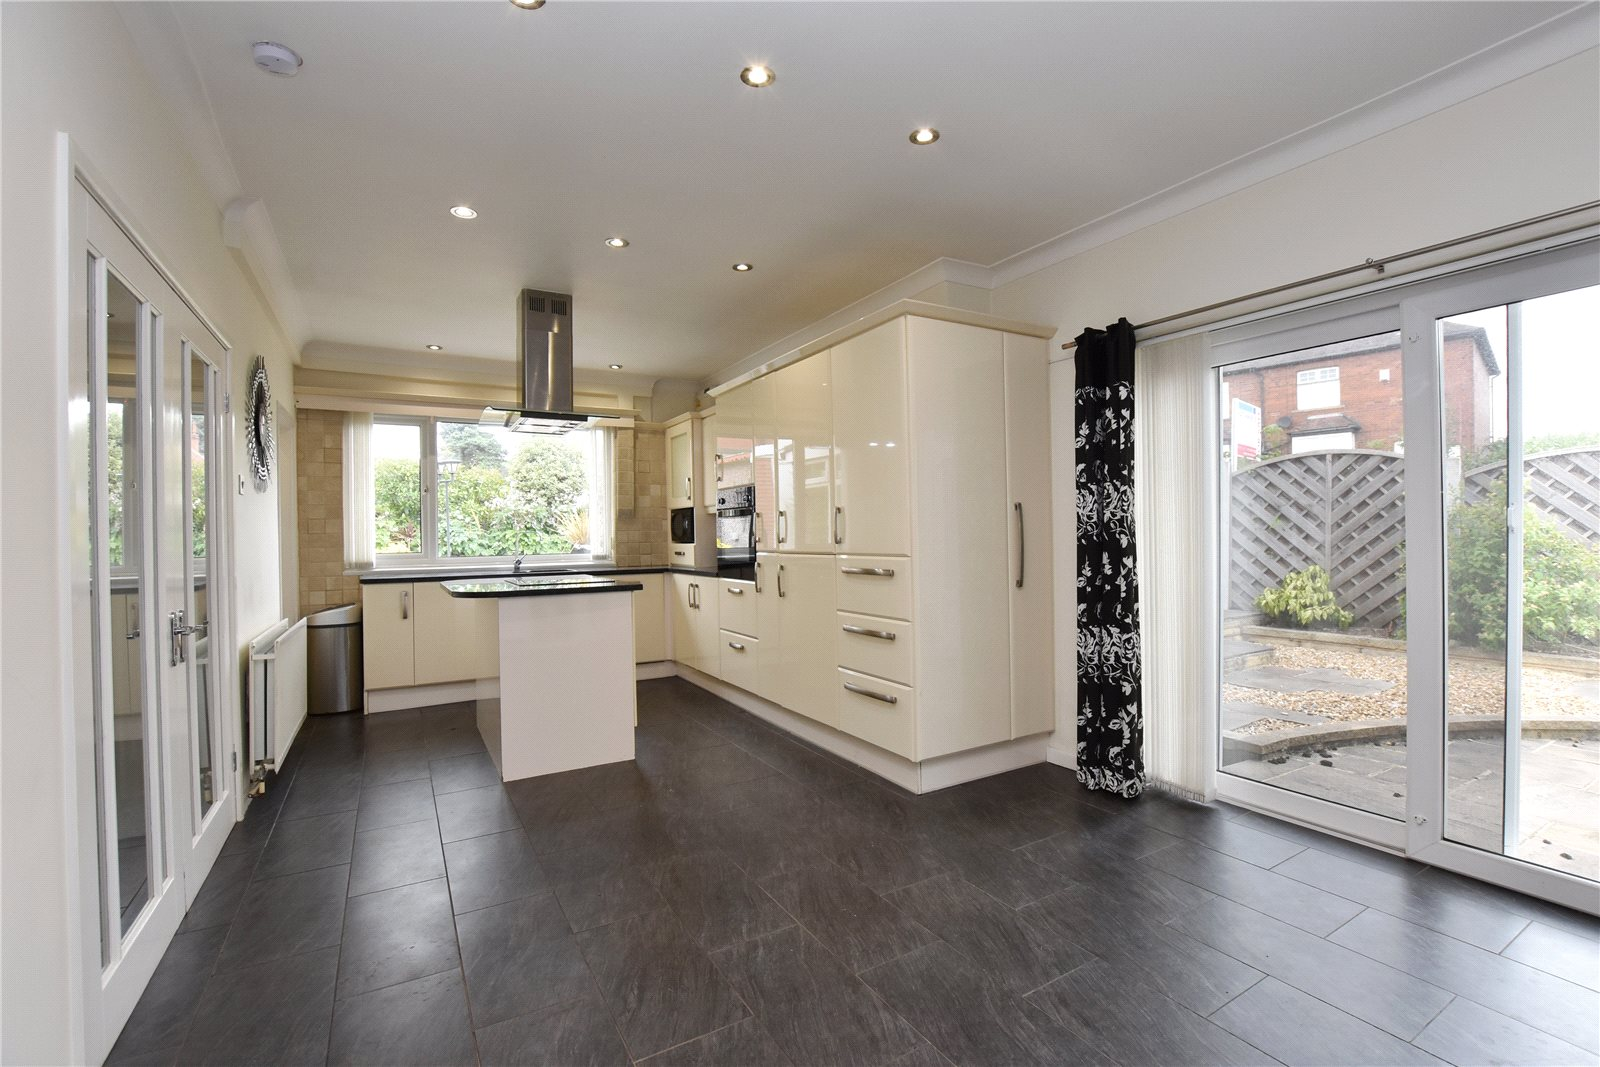 property to let in morley, spacious and modern kitchen